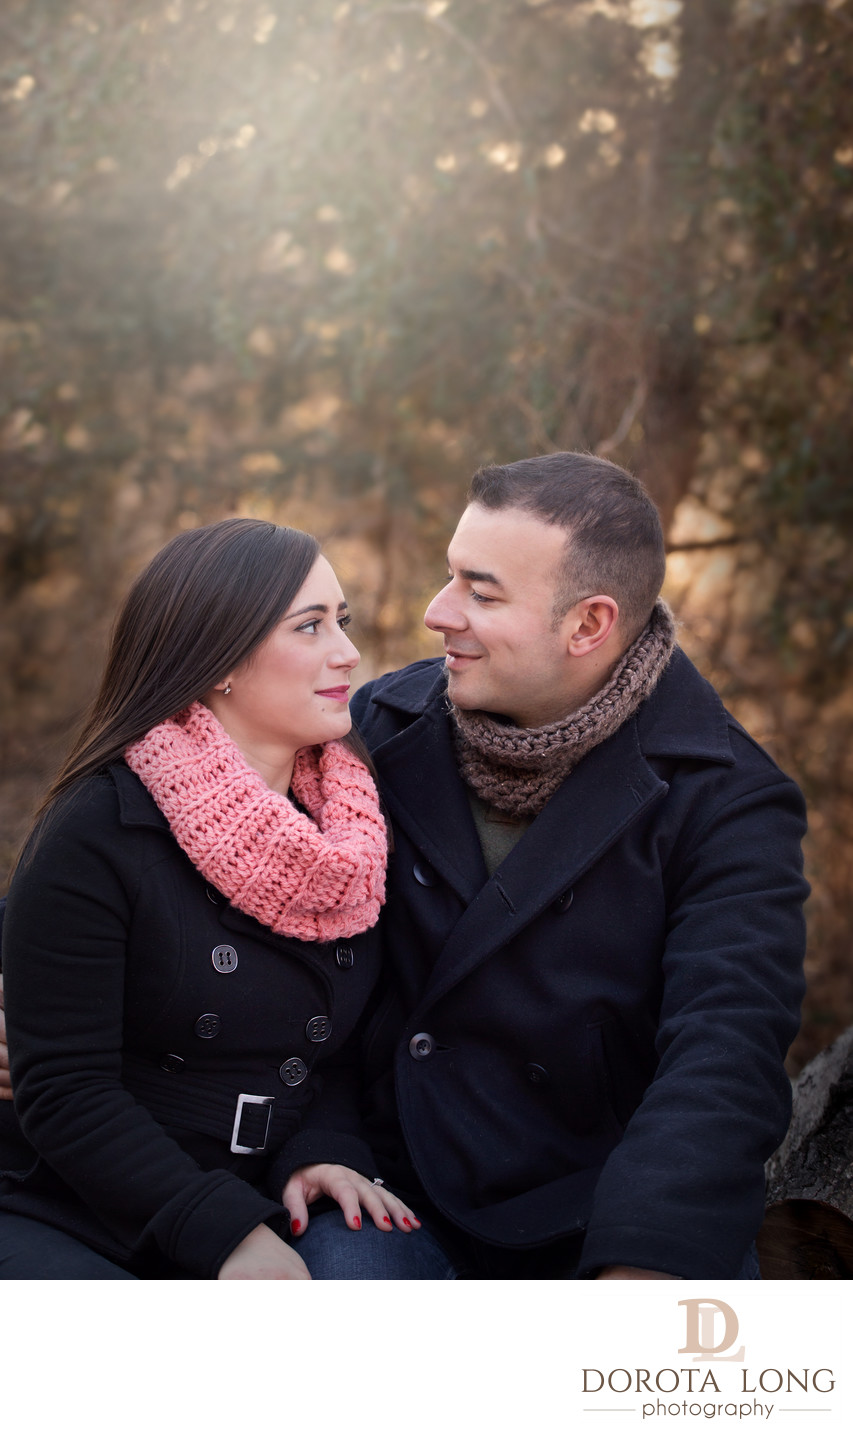 outdoor portrait of a couple wearing dark coats